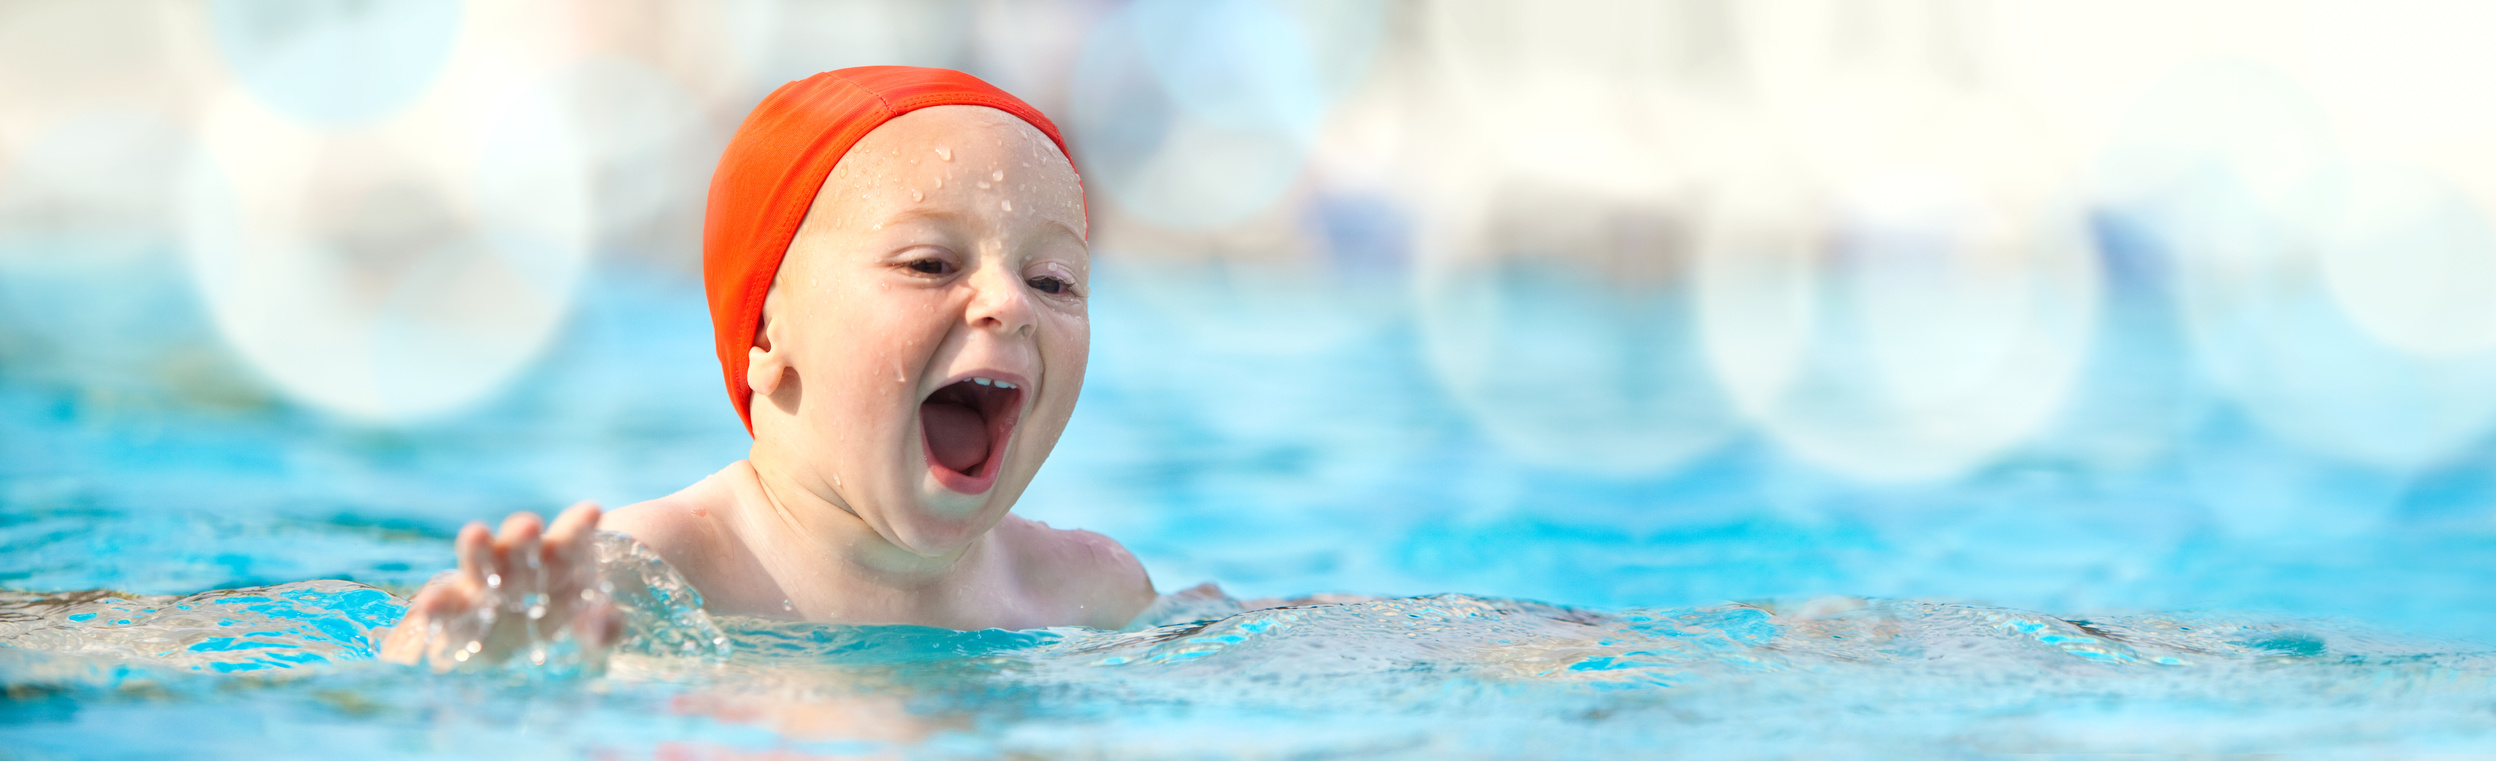 child swimming - moving matters